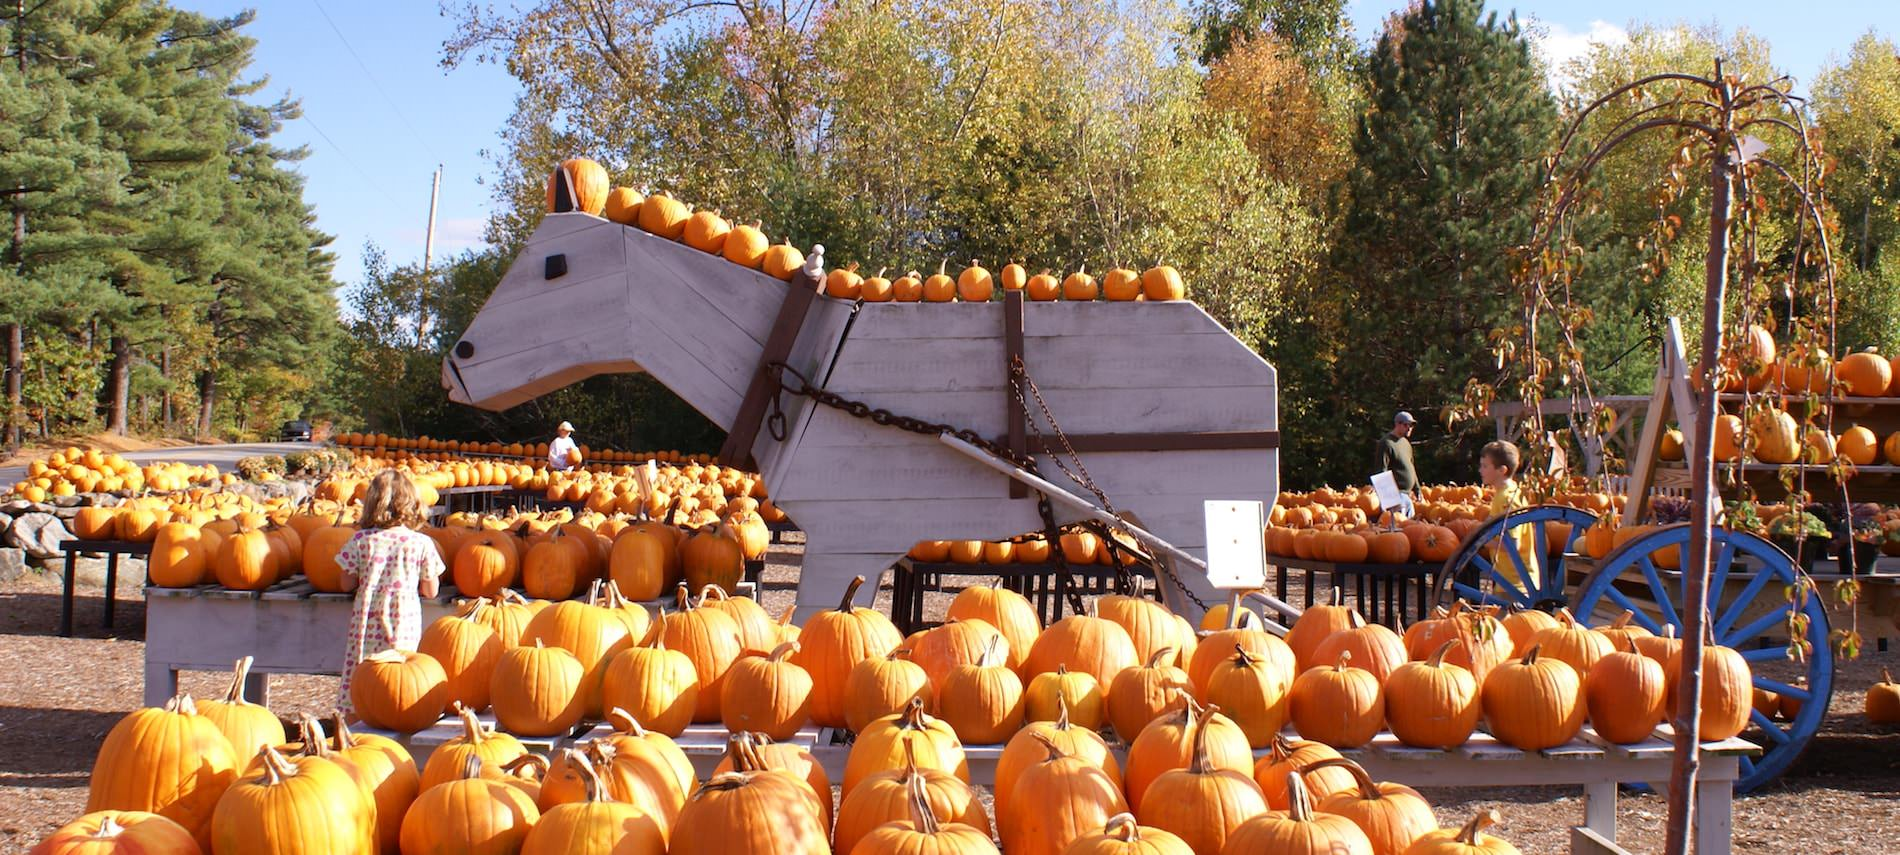 A few people looking at rows of pumpkins outside